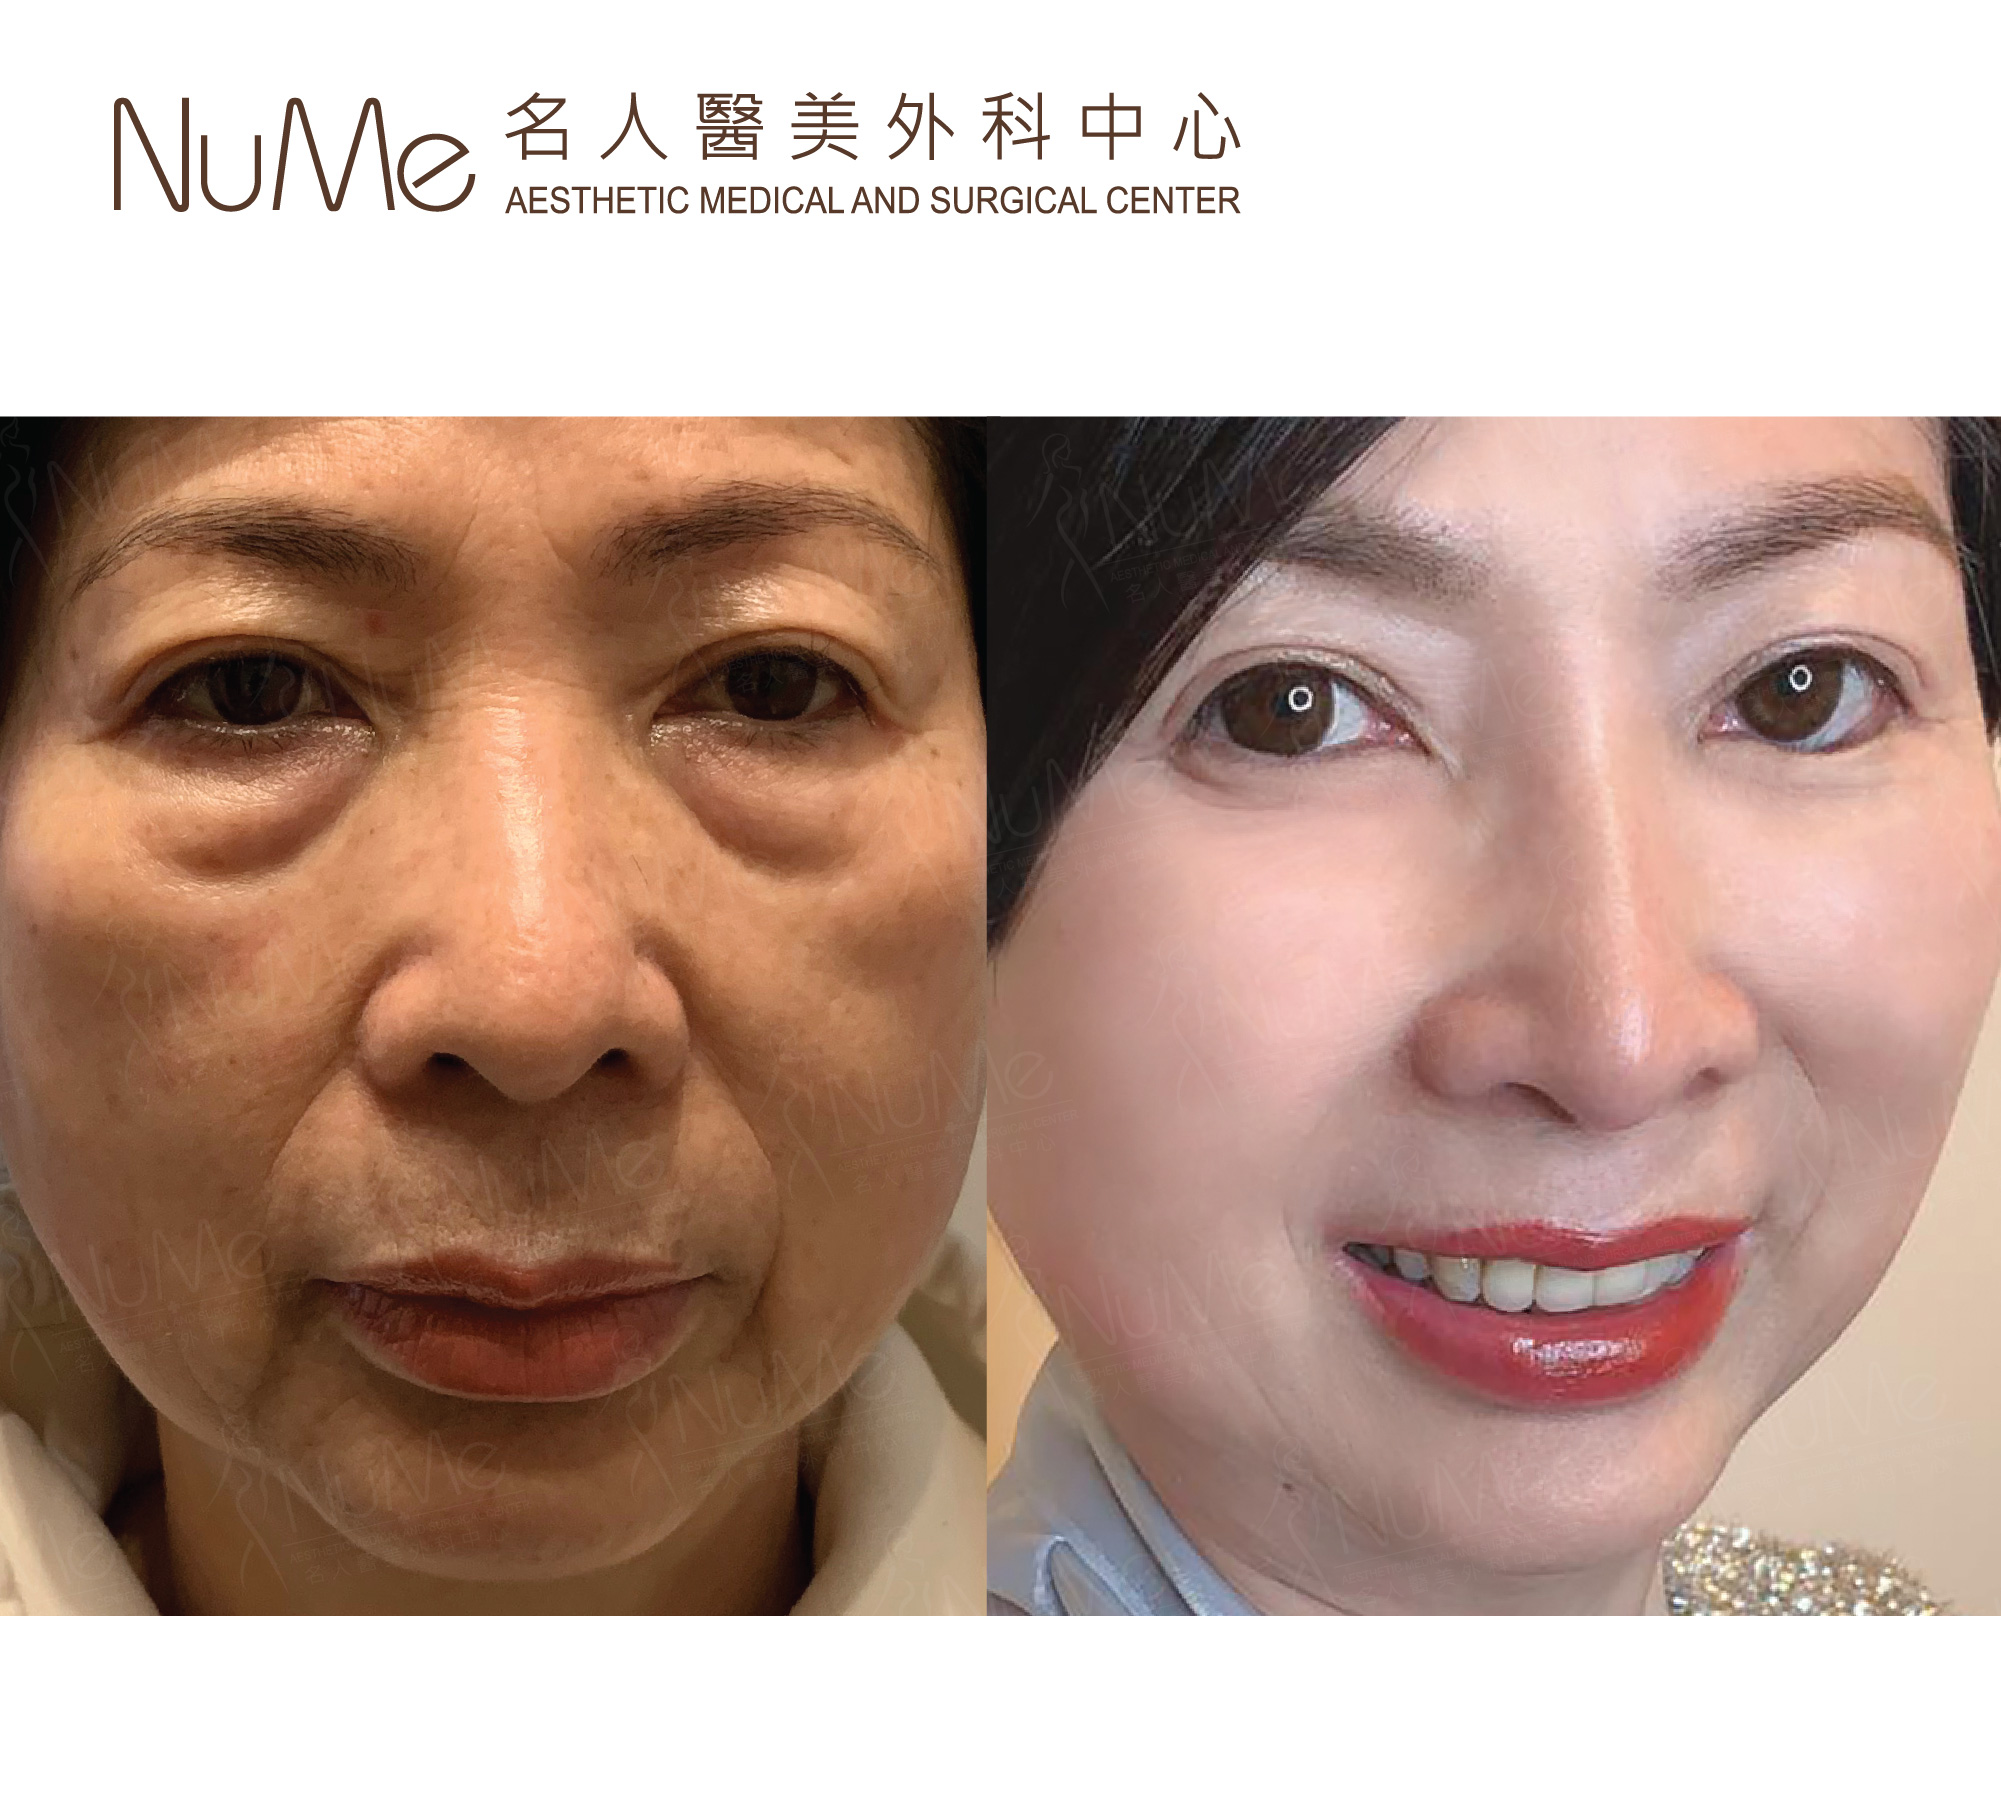 NuMe-Facebook-Before-After-Photos-Comments-Eyebags-05.jpg